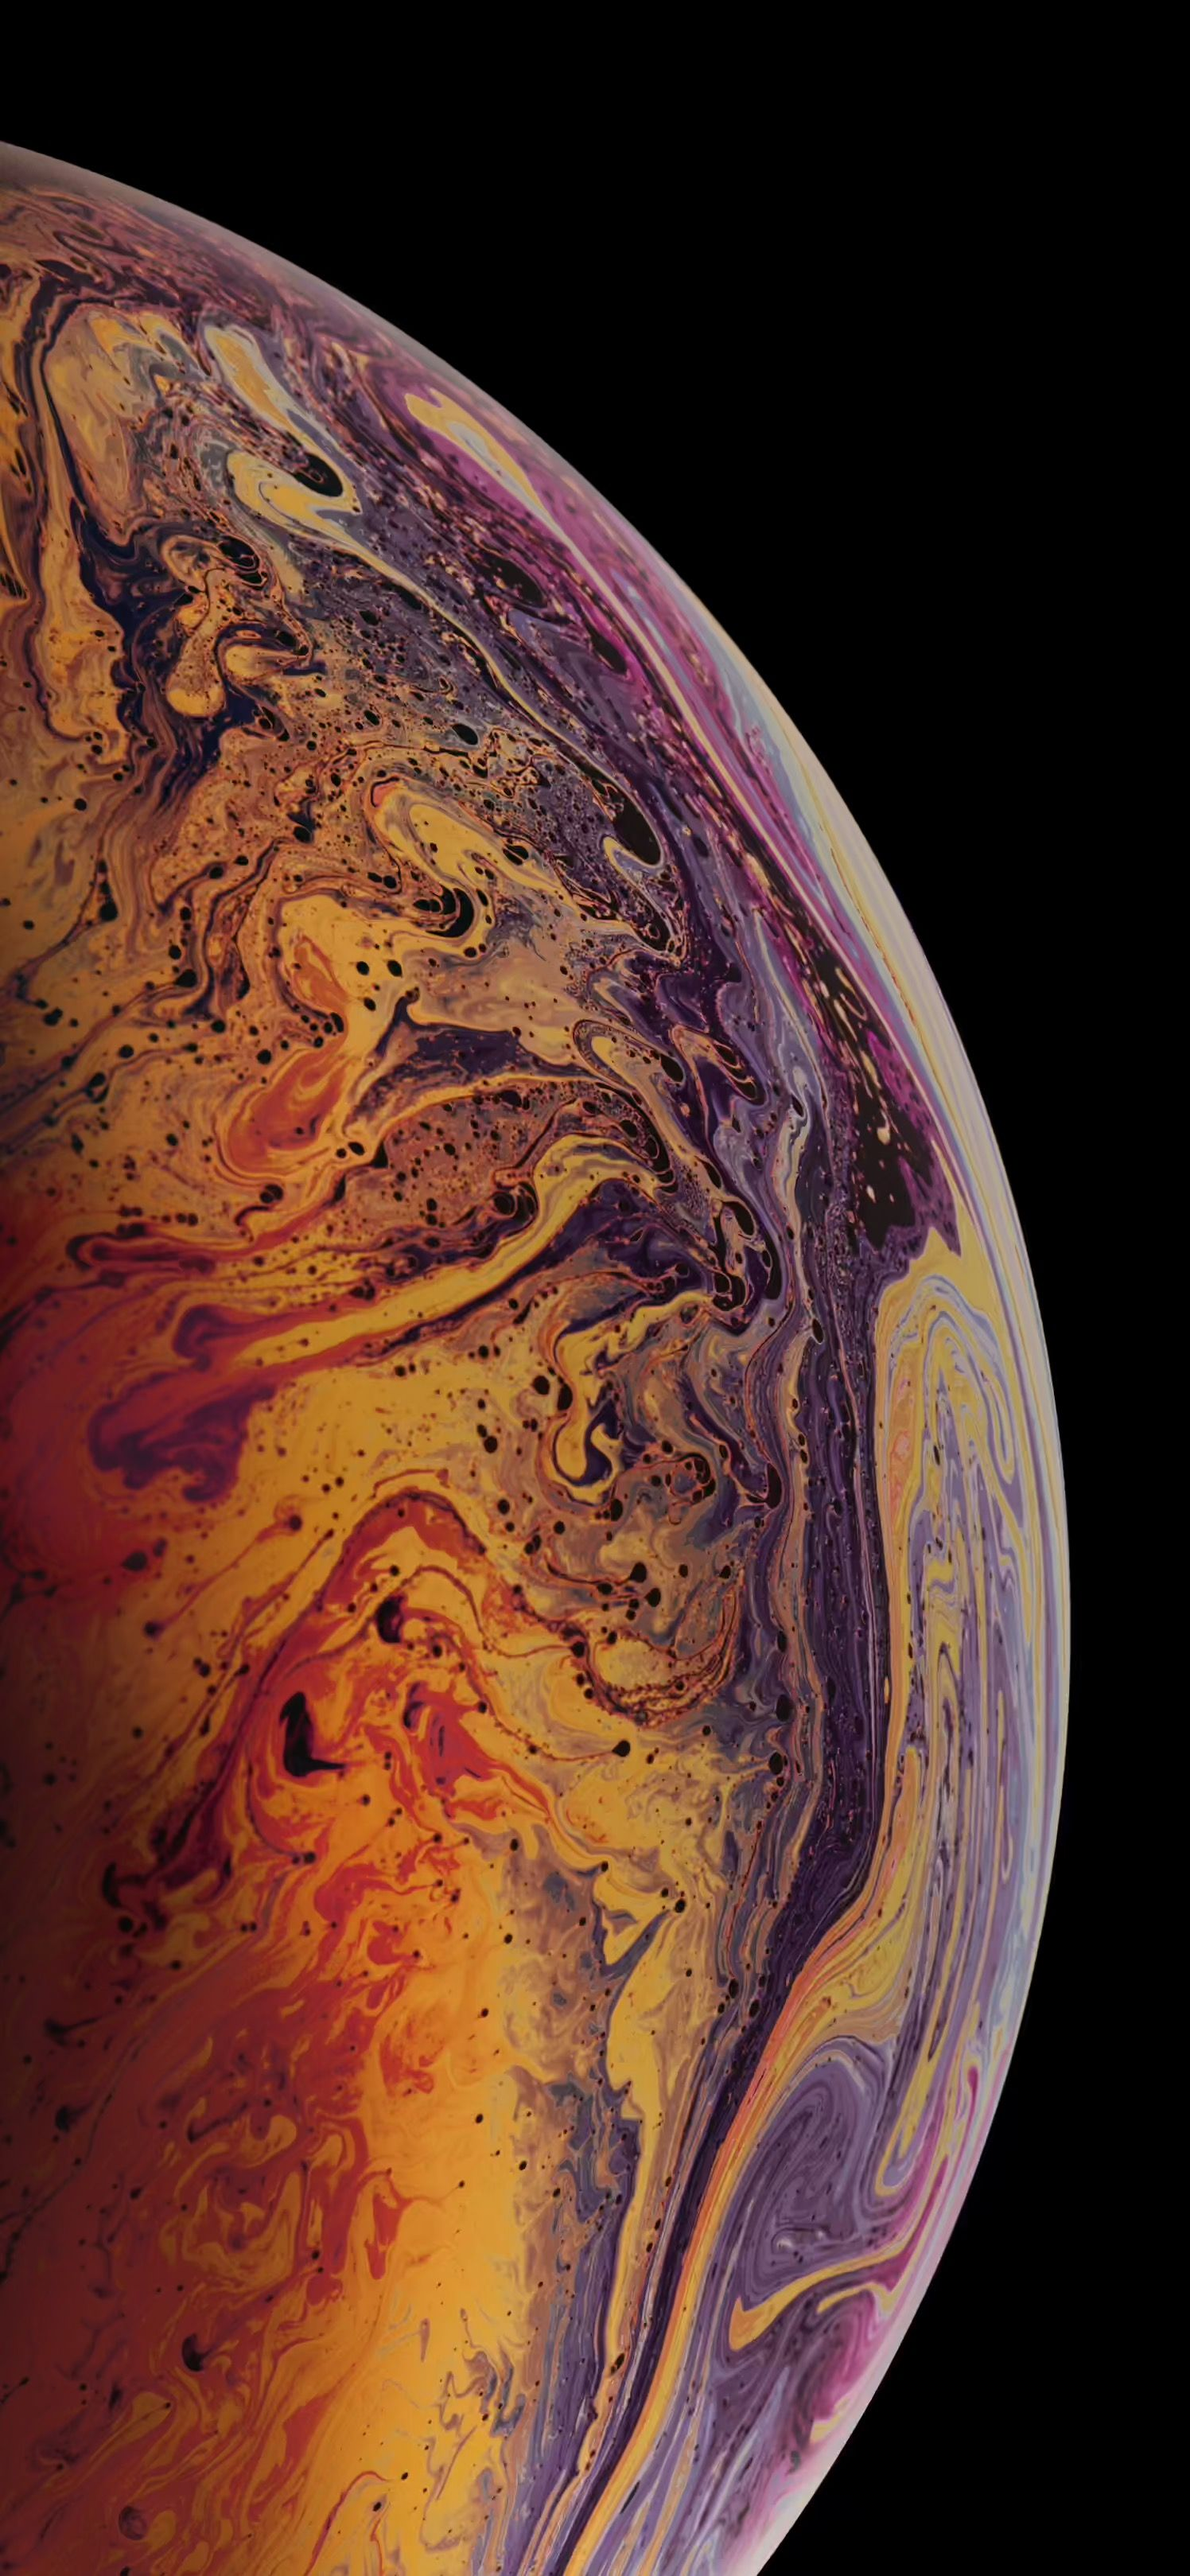 Download The 3 Iphone Xs Max Wallpapers Of Bubbles Osxdaily Iphone Wallpaper Earth Iphone Wallpaper Ios Iphone Wallpaper Images